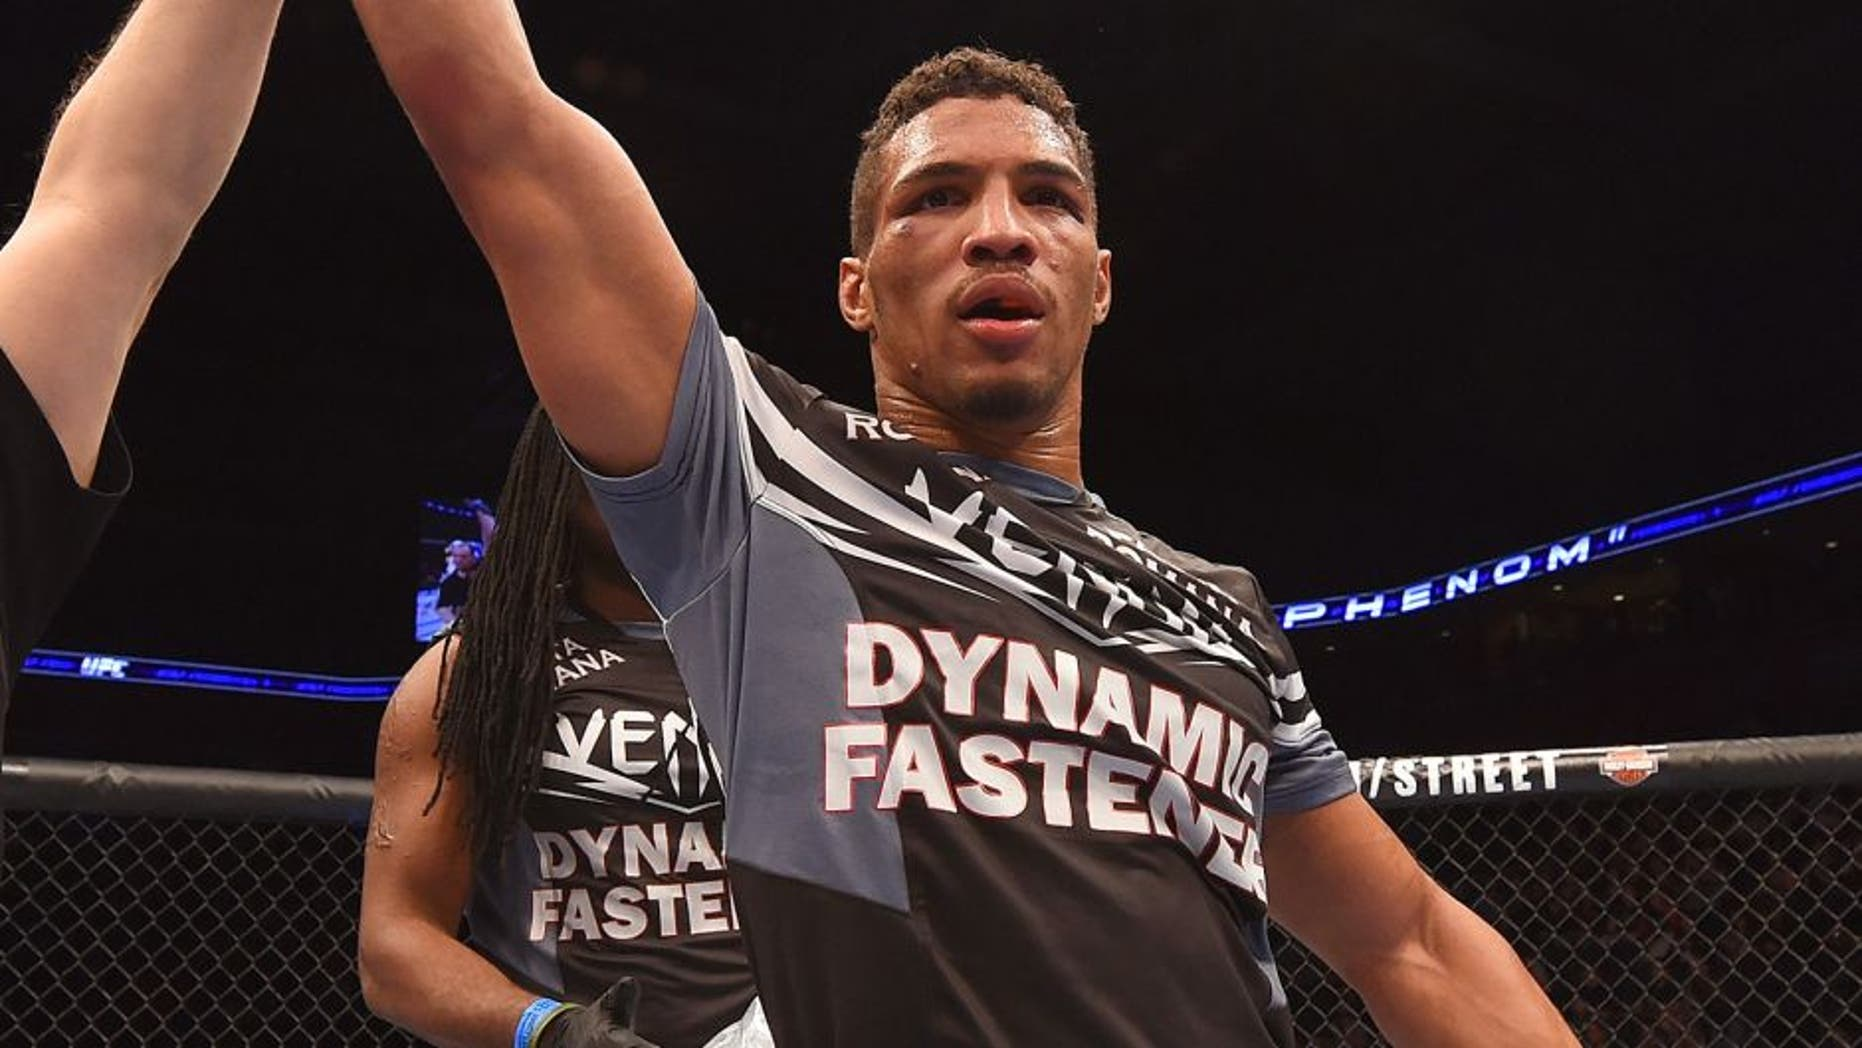 BROOMFIELD, CO - FEBRUARY 14: Kevin Lee celebrates after defeating Michel Prazeres by unanimous decision in their lightweight fight during the UFC Fight Night event inside 1stBank Center on February 14, 2015 in Broomfield, Colorado. (Photo by Josh Hedges/Zuffa LLC/Zuffa LLC via Getty Images)